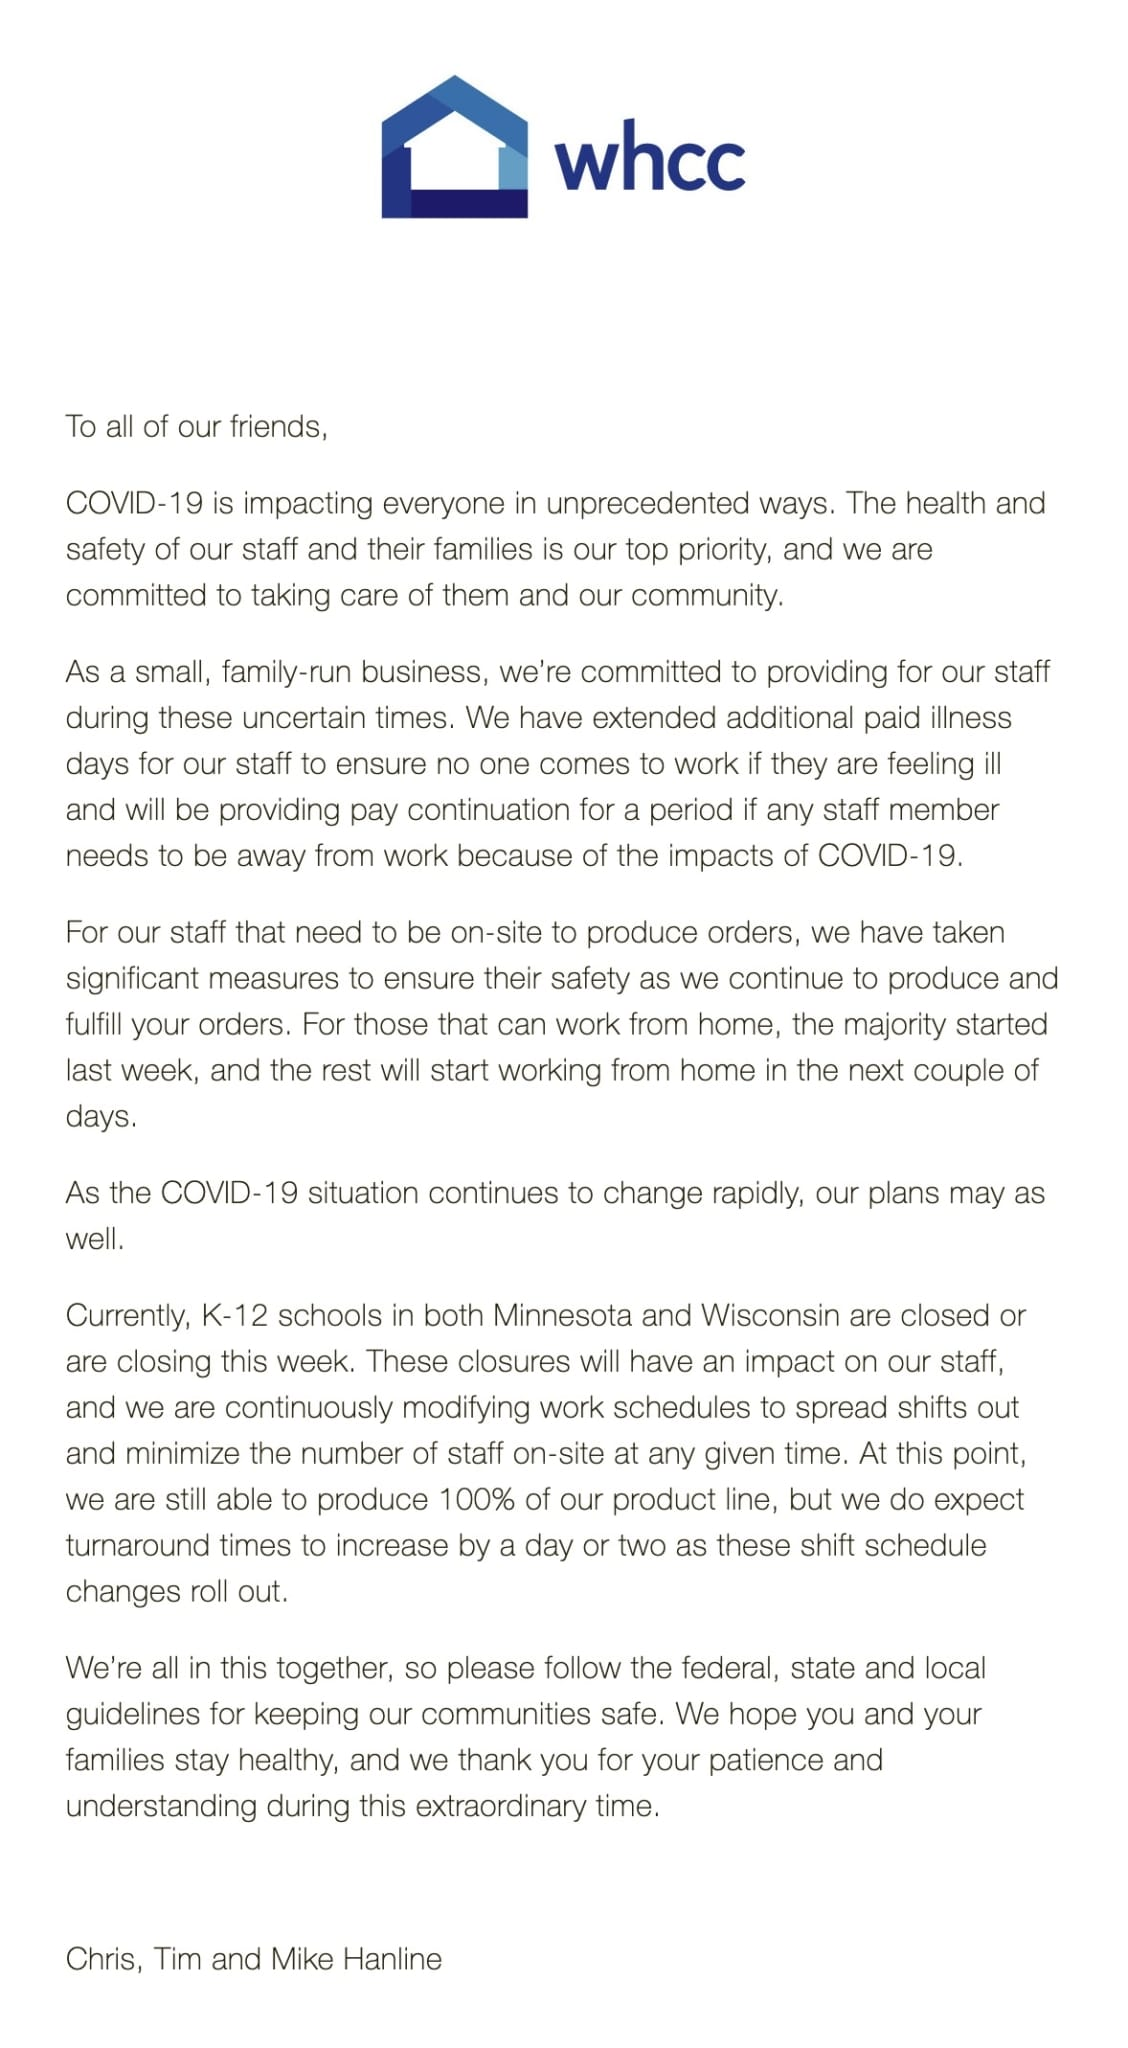 Letter from WHCC customers from Chris, Tim and Mike Hanline.